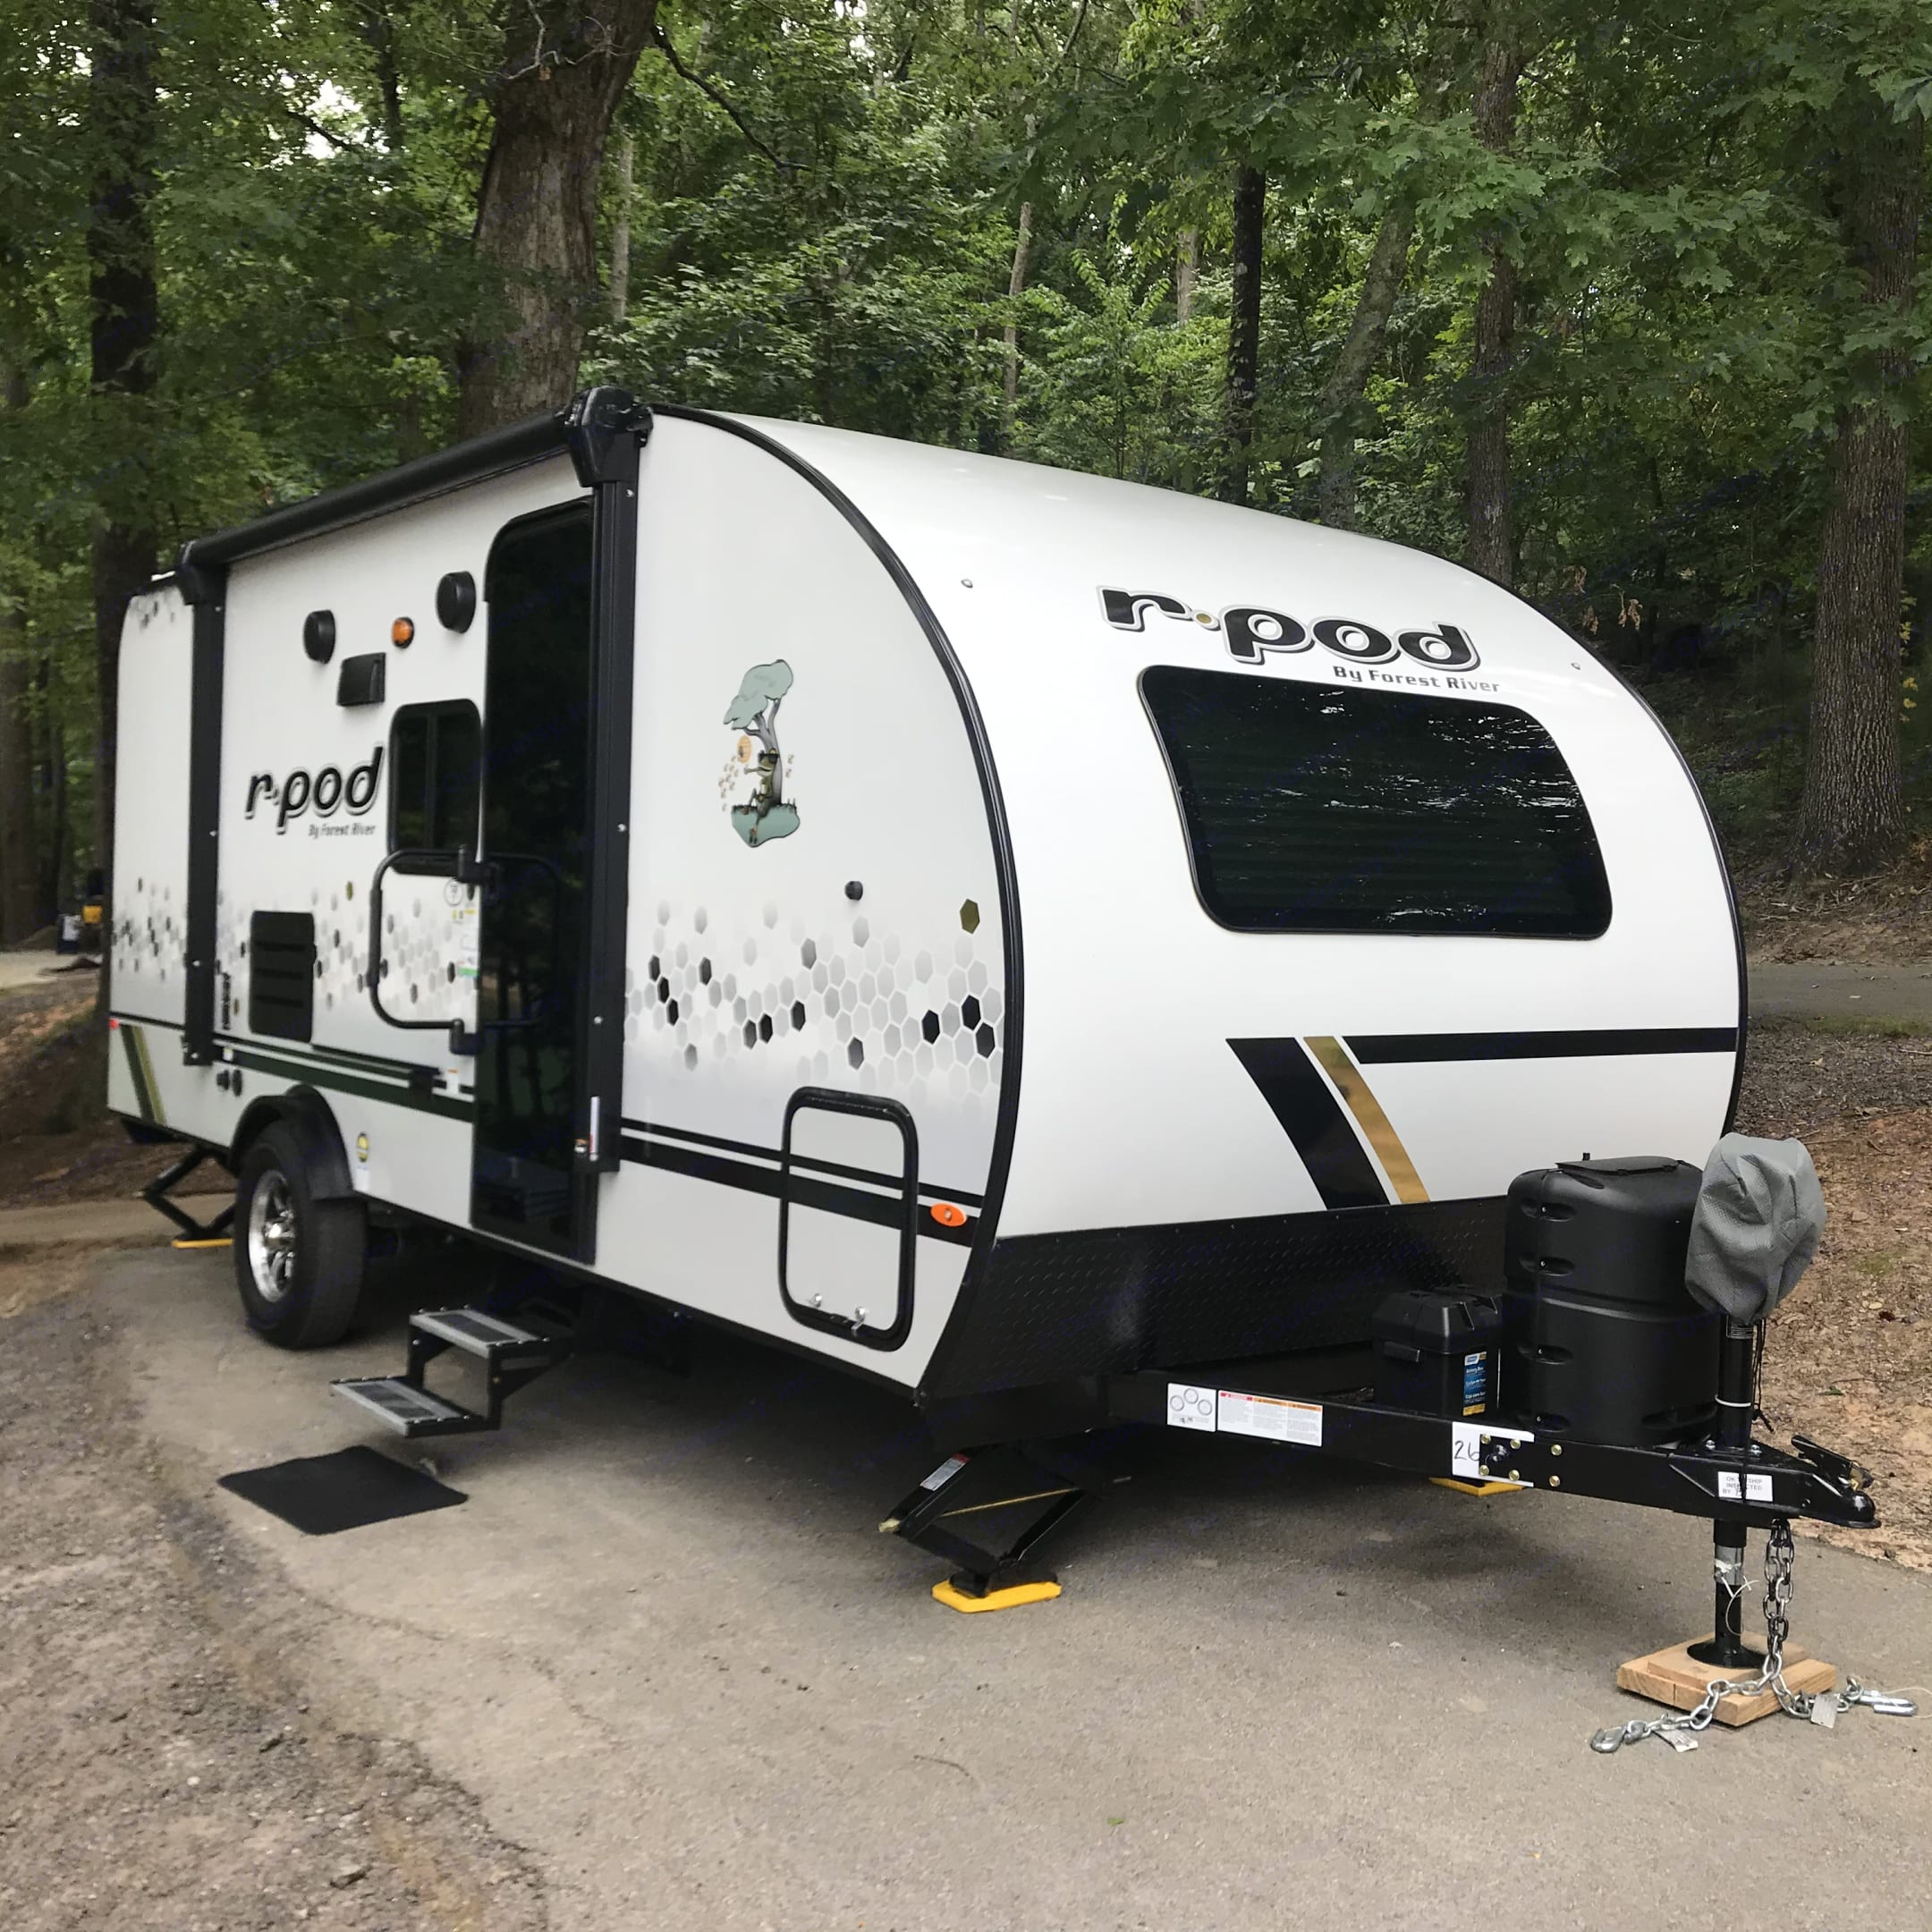 Awning is in. Has 4 Stabilizer Jacks on each corner, to keep the trailer from rocking when inside. . Forest River R-Pod 2021